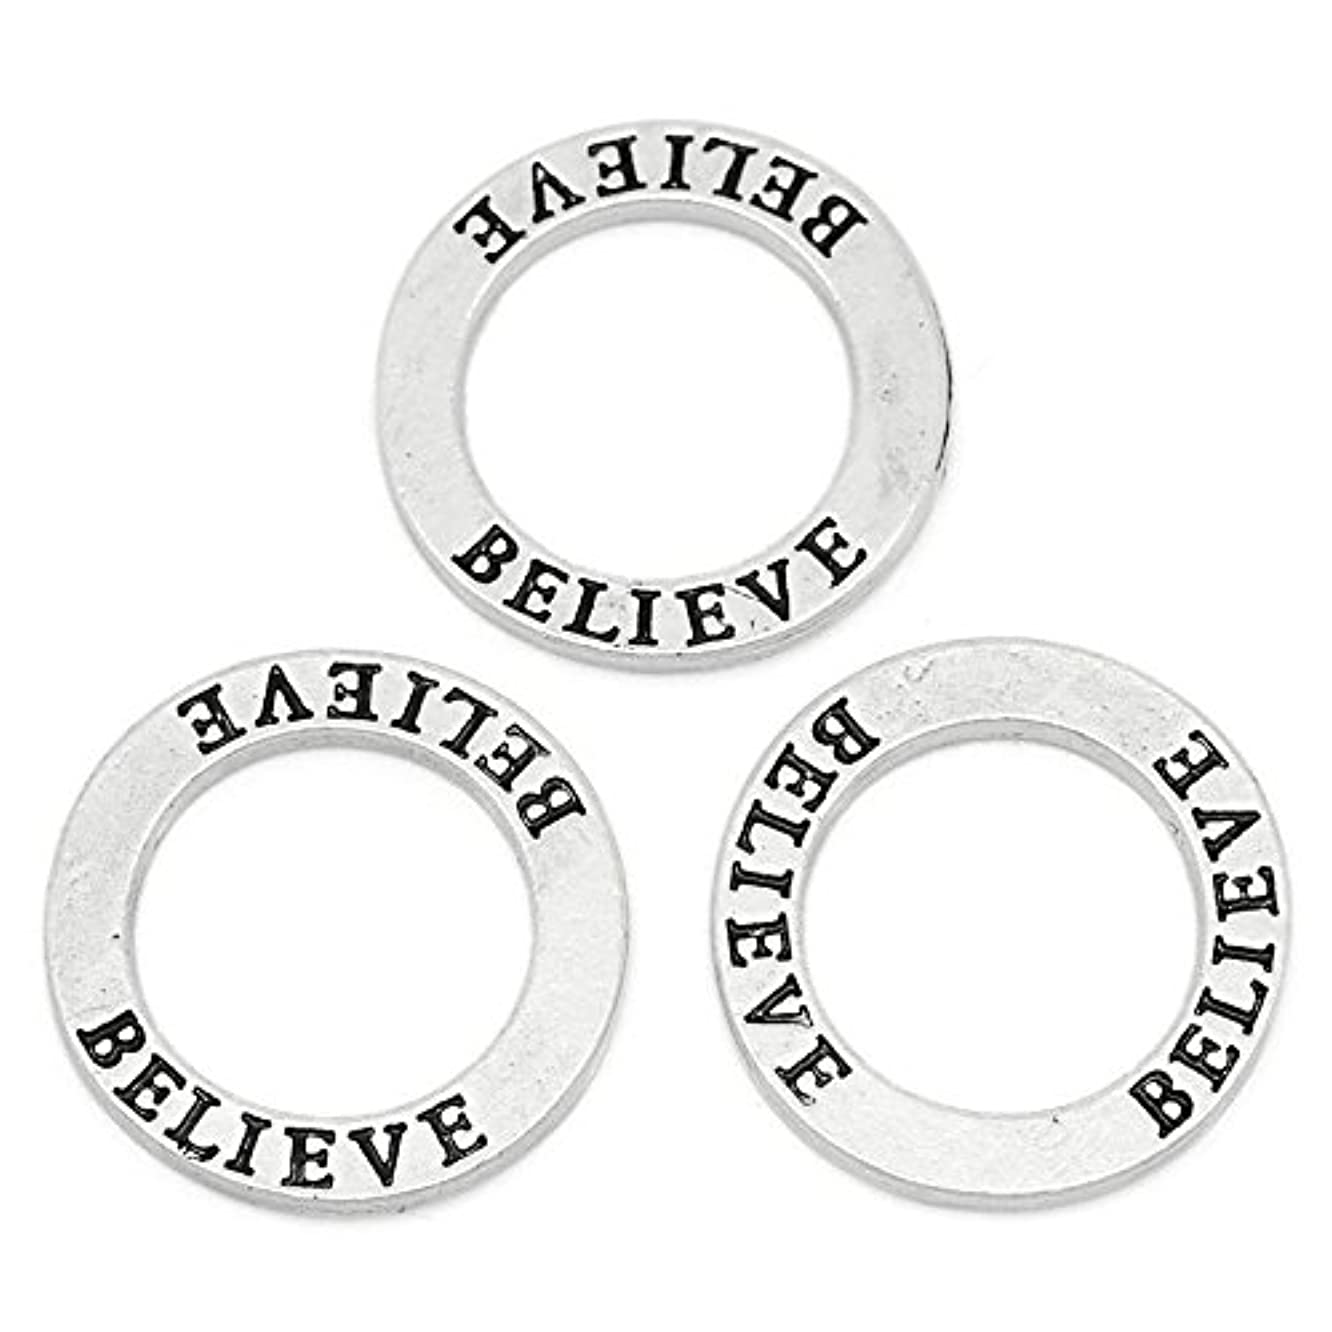 Craft Making Shop 30 Count Antique Silver Believe Affirmation Ring Washer 22mm Diameter